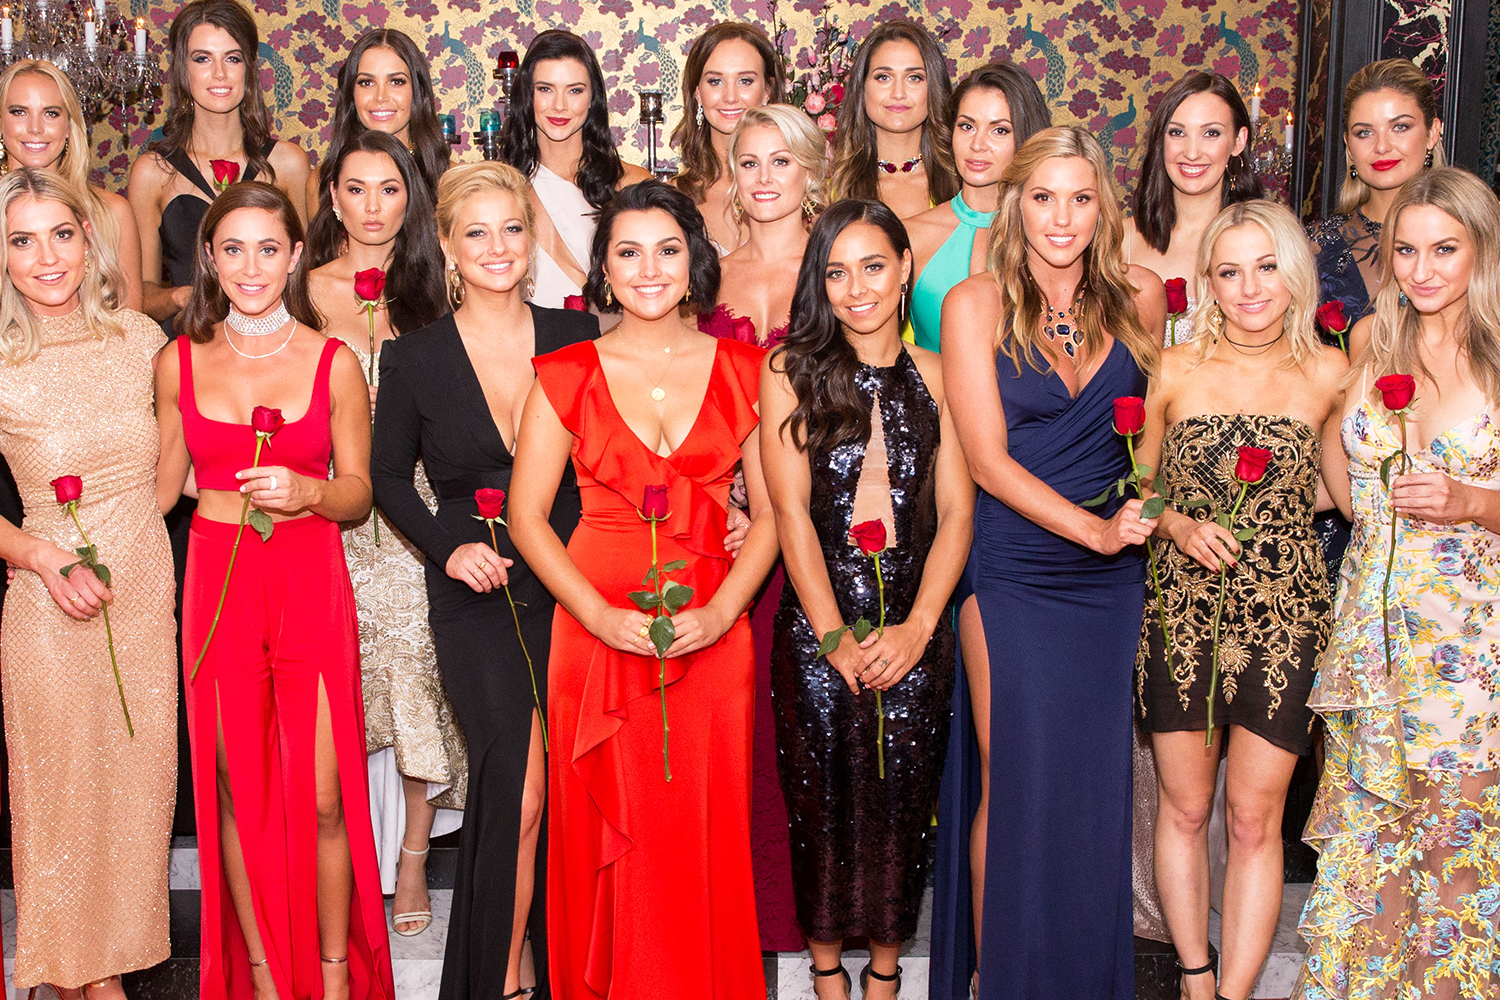 Girls from the bachelor